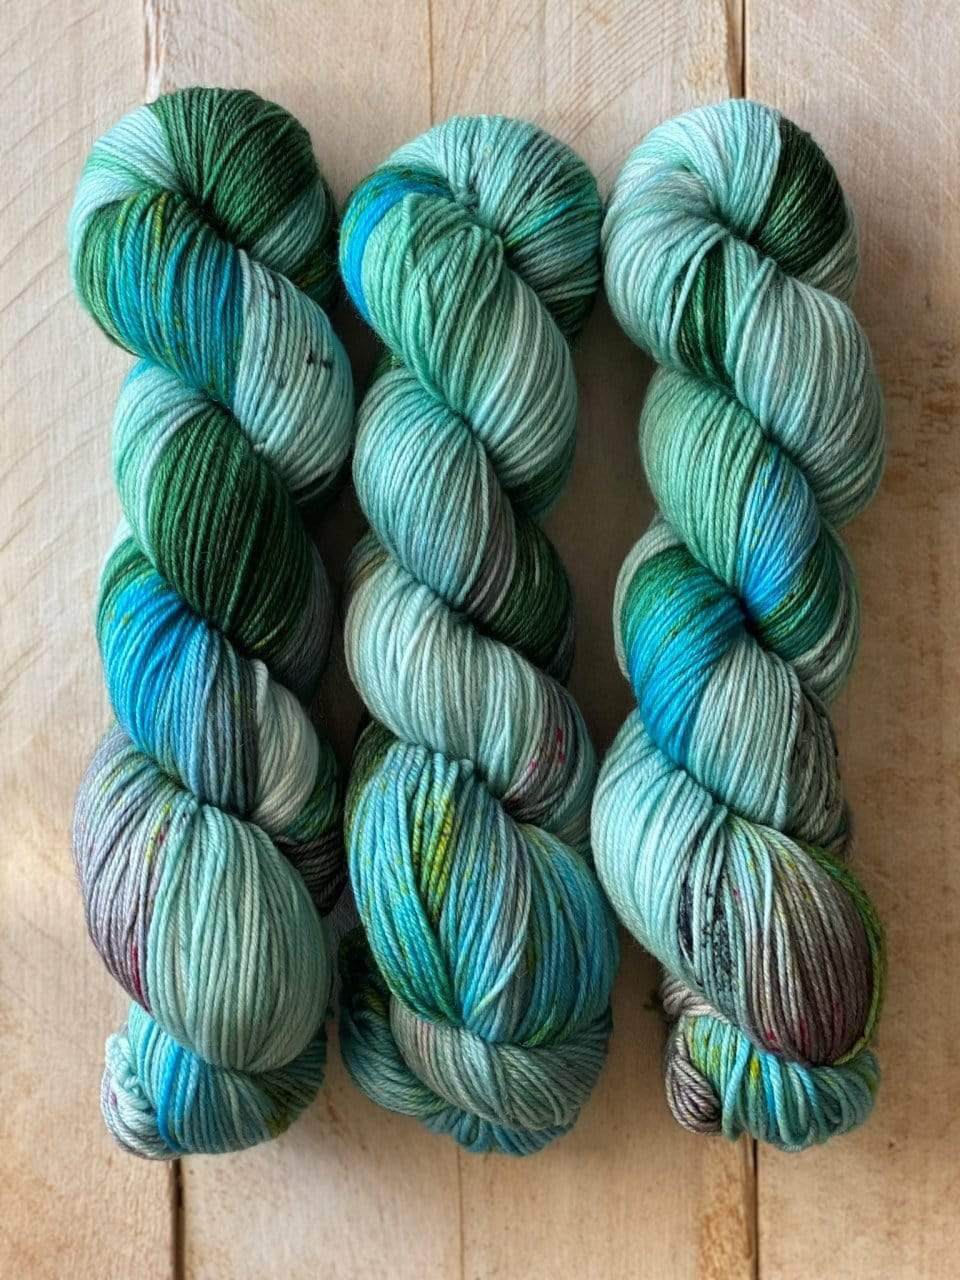 Bis-Sock BORA BORA | hand-dyed Speckled sock yarn | 100g (2x50g) / 50g (mini skein)